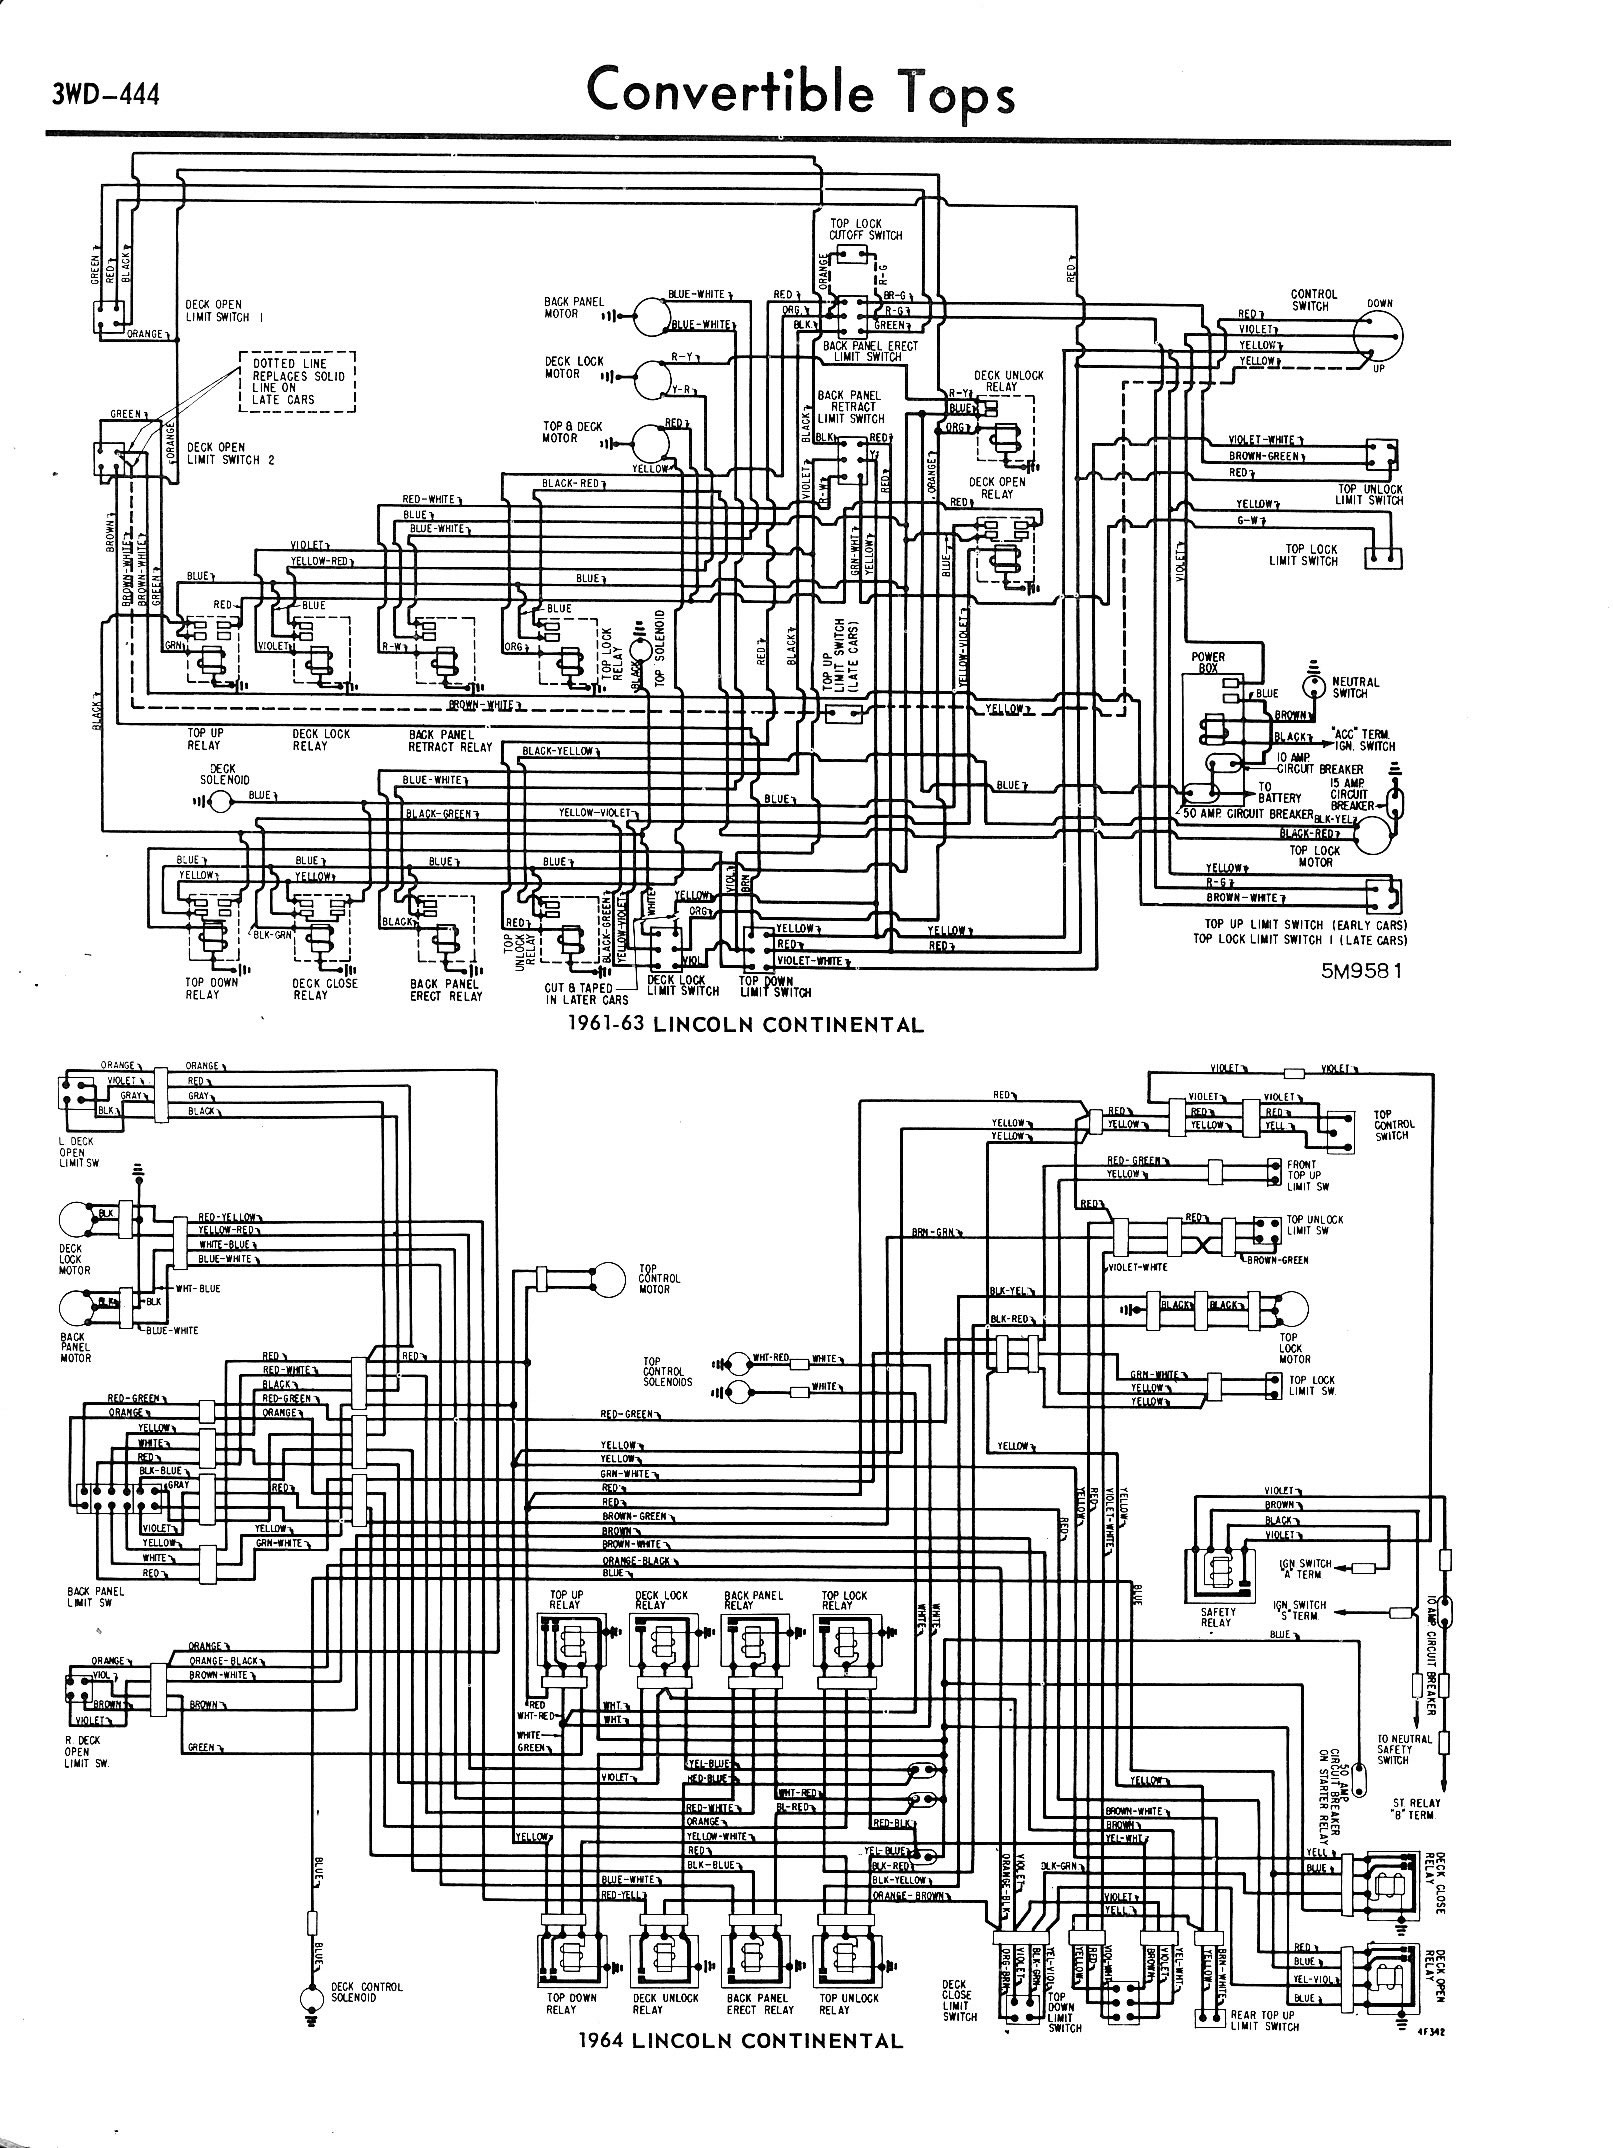 pontiac g6 wiring diagram schematics free download html with Lincoln Wiring Diagram Headlights on 2005 Chrysler Pacifica Wiring Diagram further 2006 Pontiac G6 Wiring Diagram in addition 2006 Gto Stereo Wiring Harness as well 03 Pontiac Montana Wiring Diagram further Dometic Rm2852 Rv Refrigerator Wiring Diagrams For.